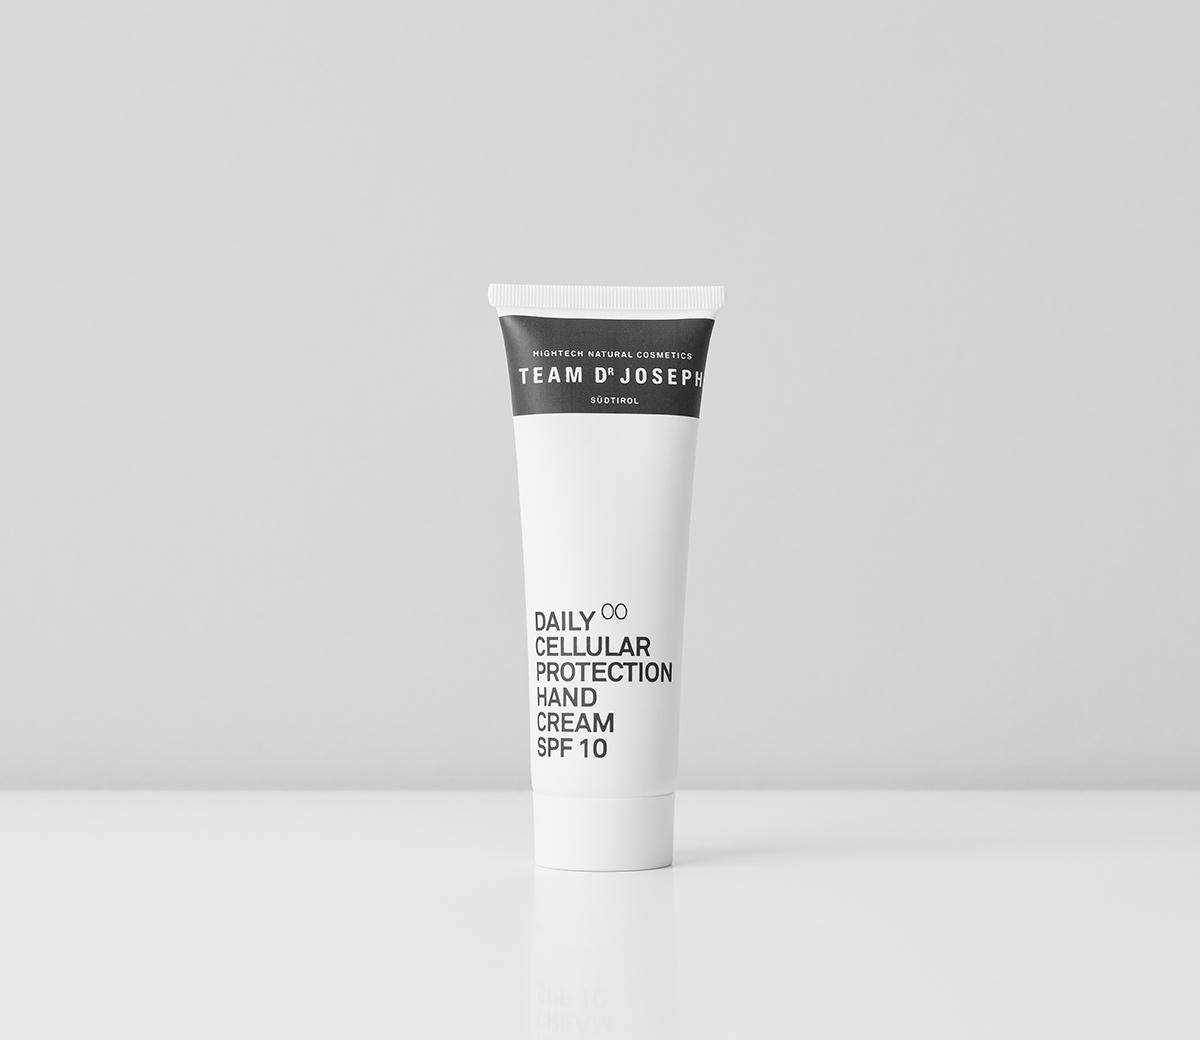 Daily Cellular Protection Hand Cream SPF10, 50 ml